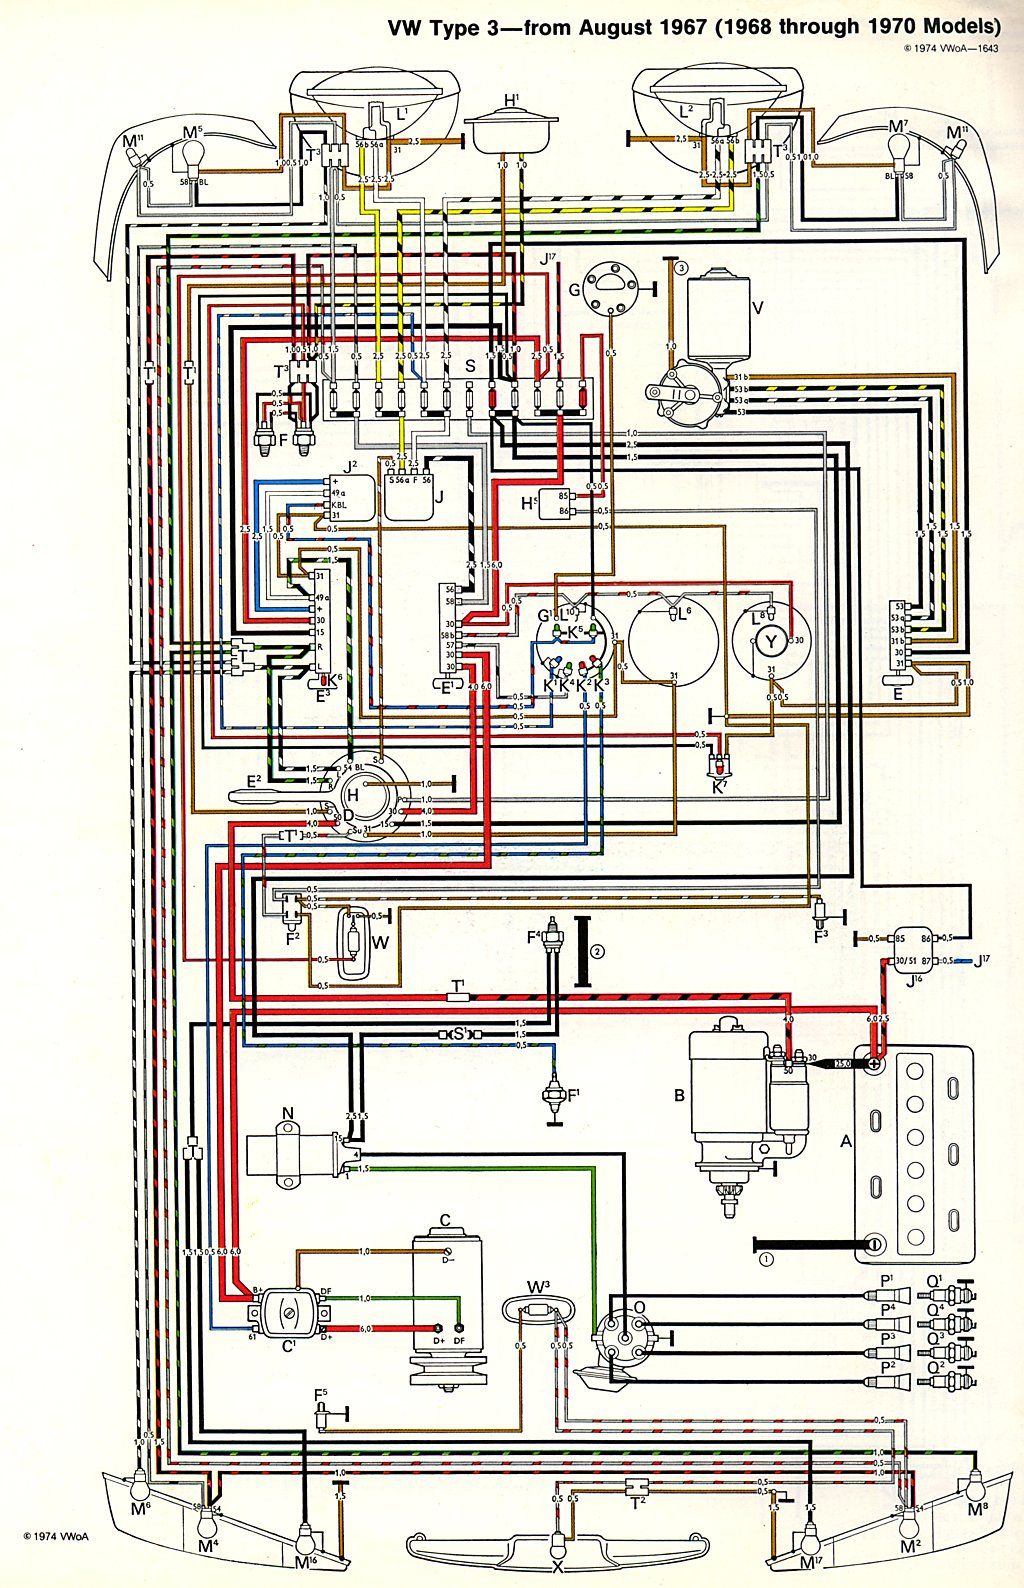 type3_6870 vw thing wiring diagram 1974 beetle heater diagram \u2022 wiring 1971 vw bus wiring diagram at crackthecode.co